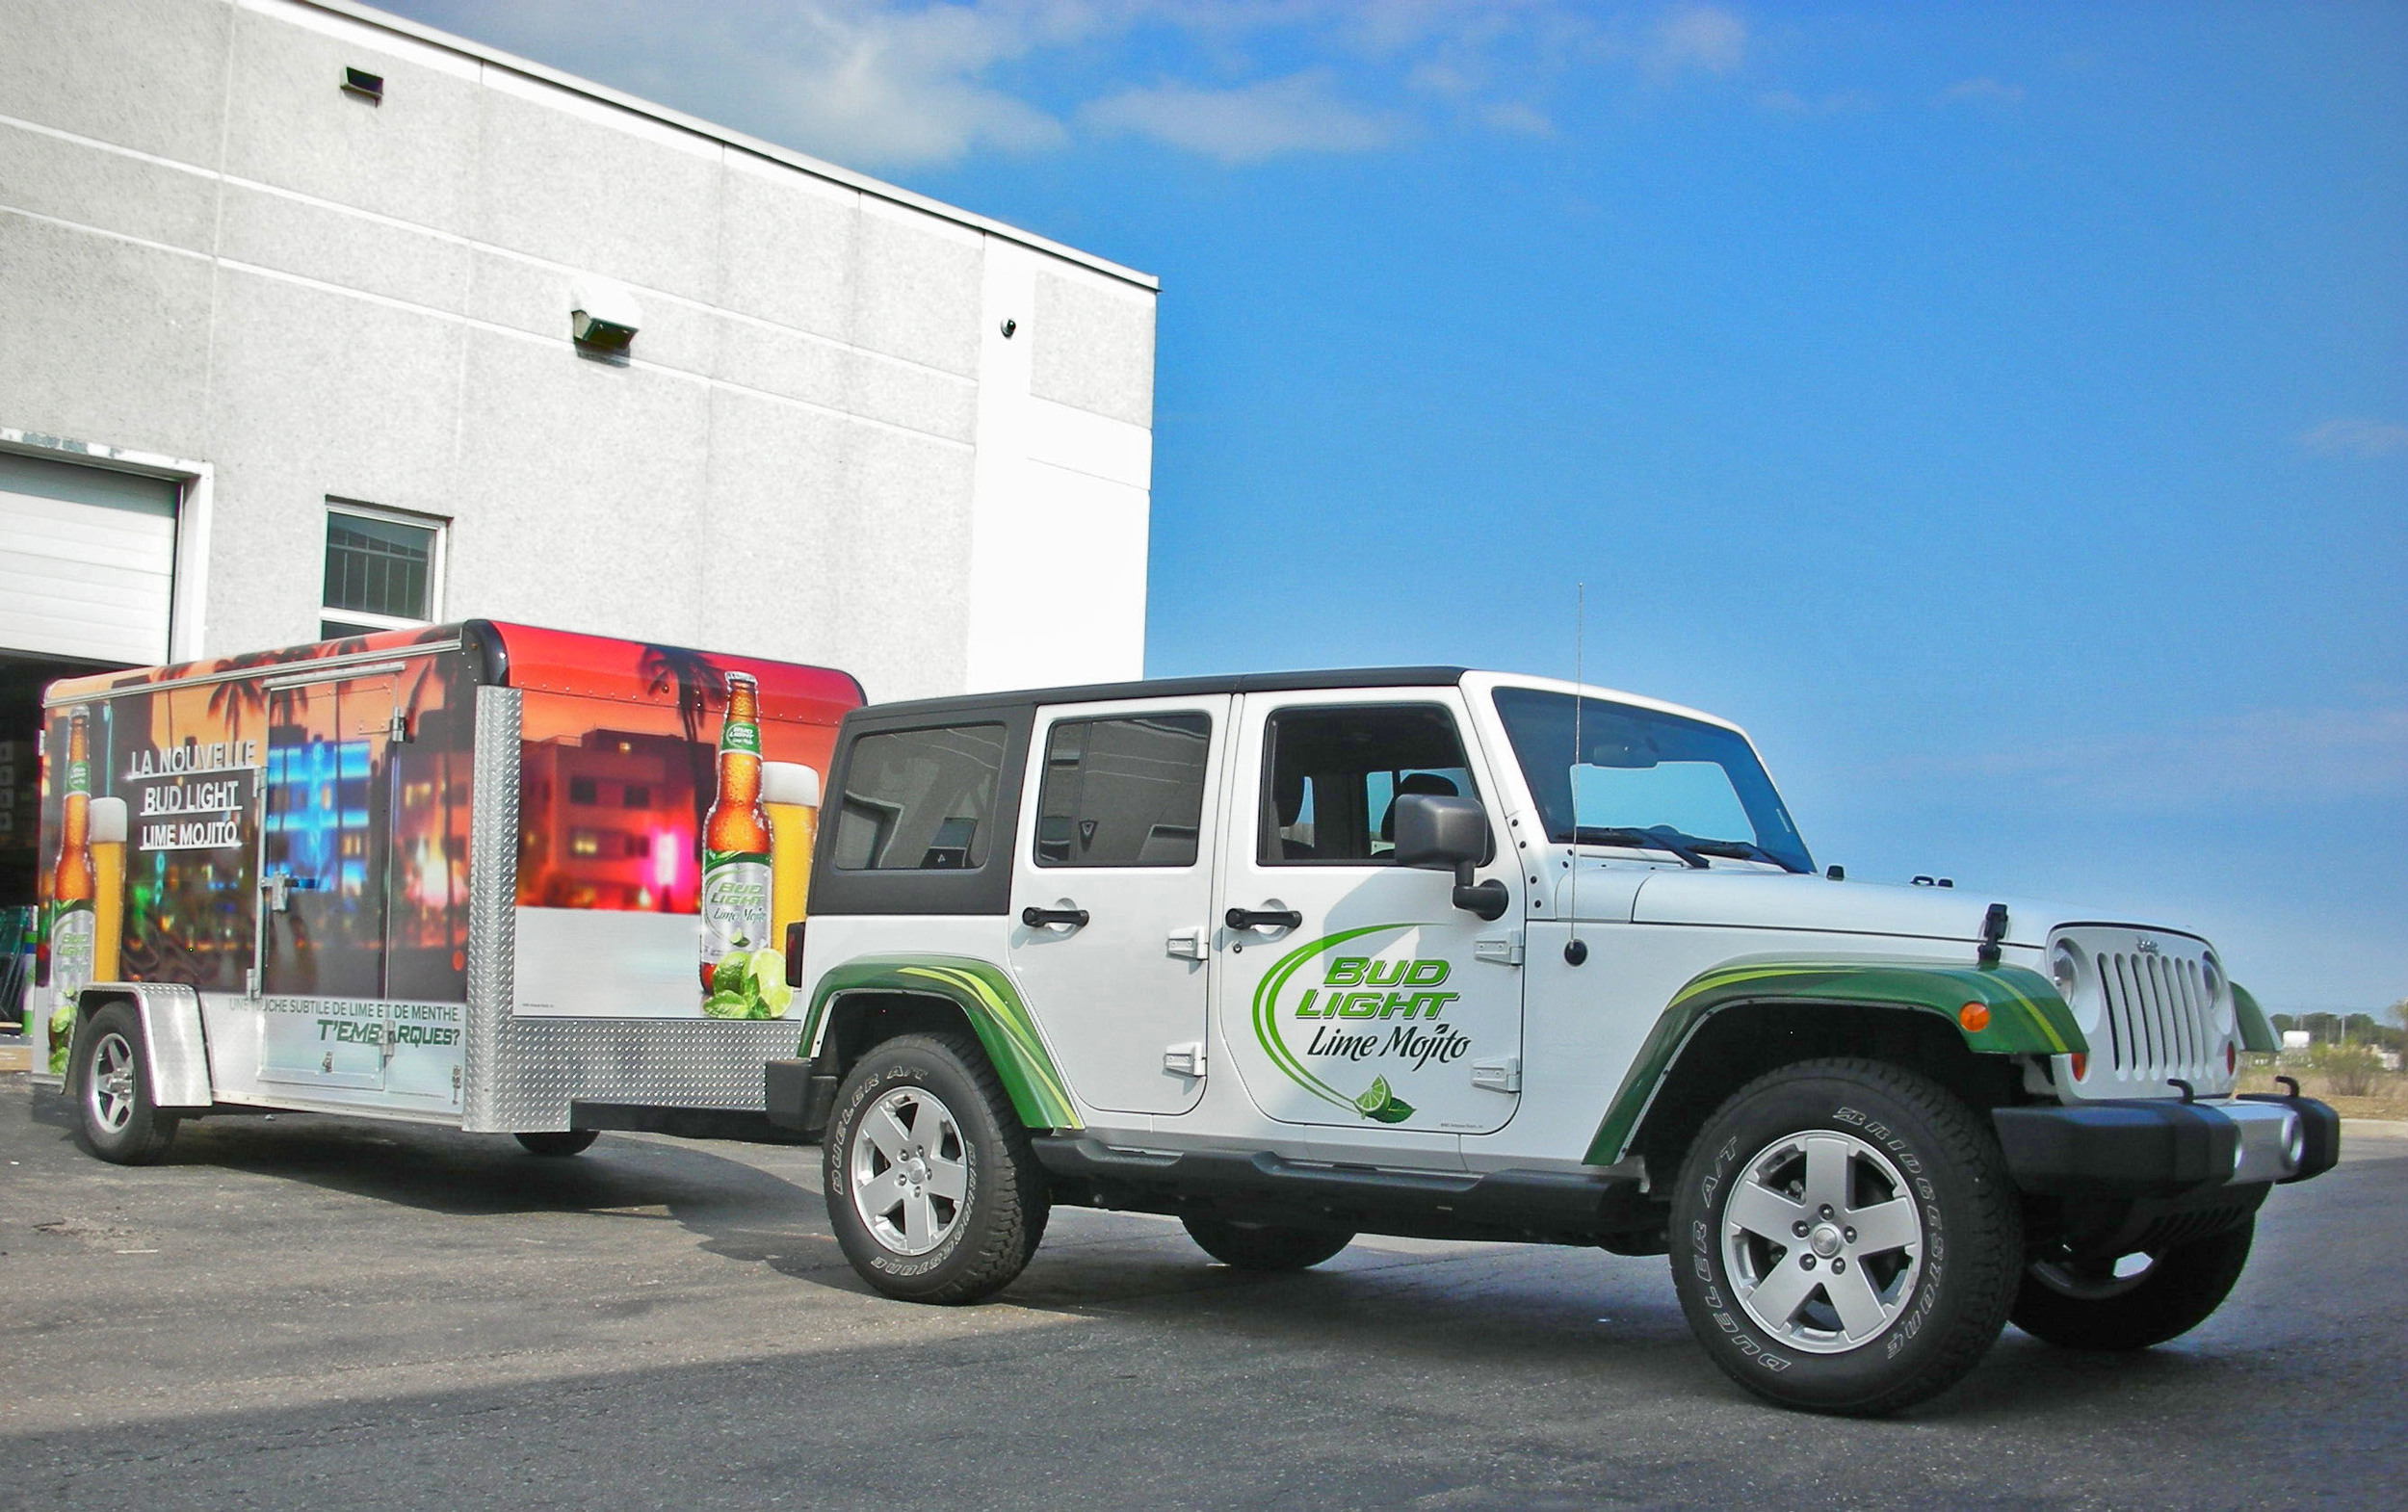 Vehicle and trailer wrap - Bud Lime